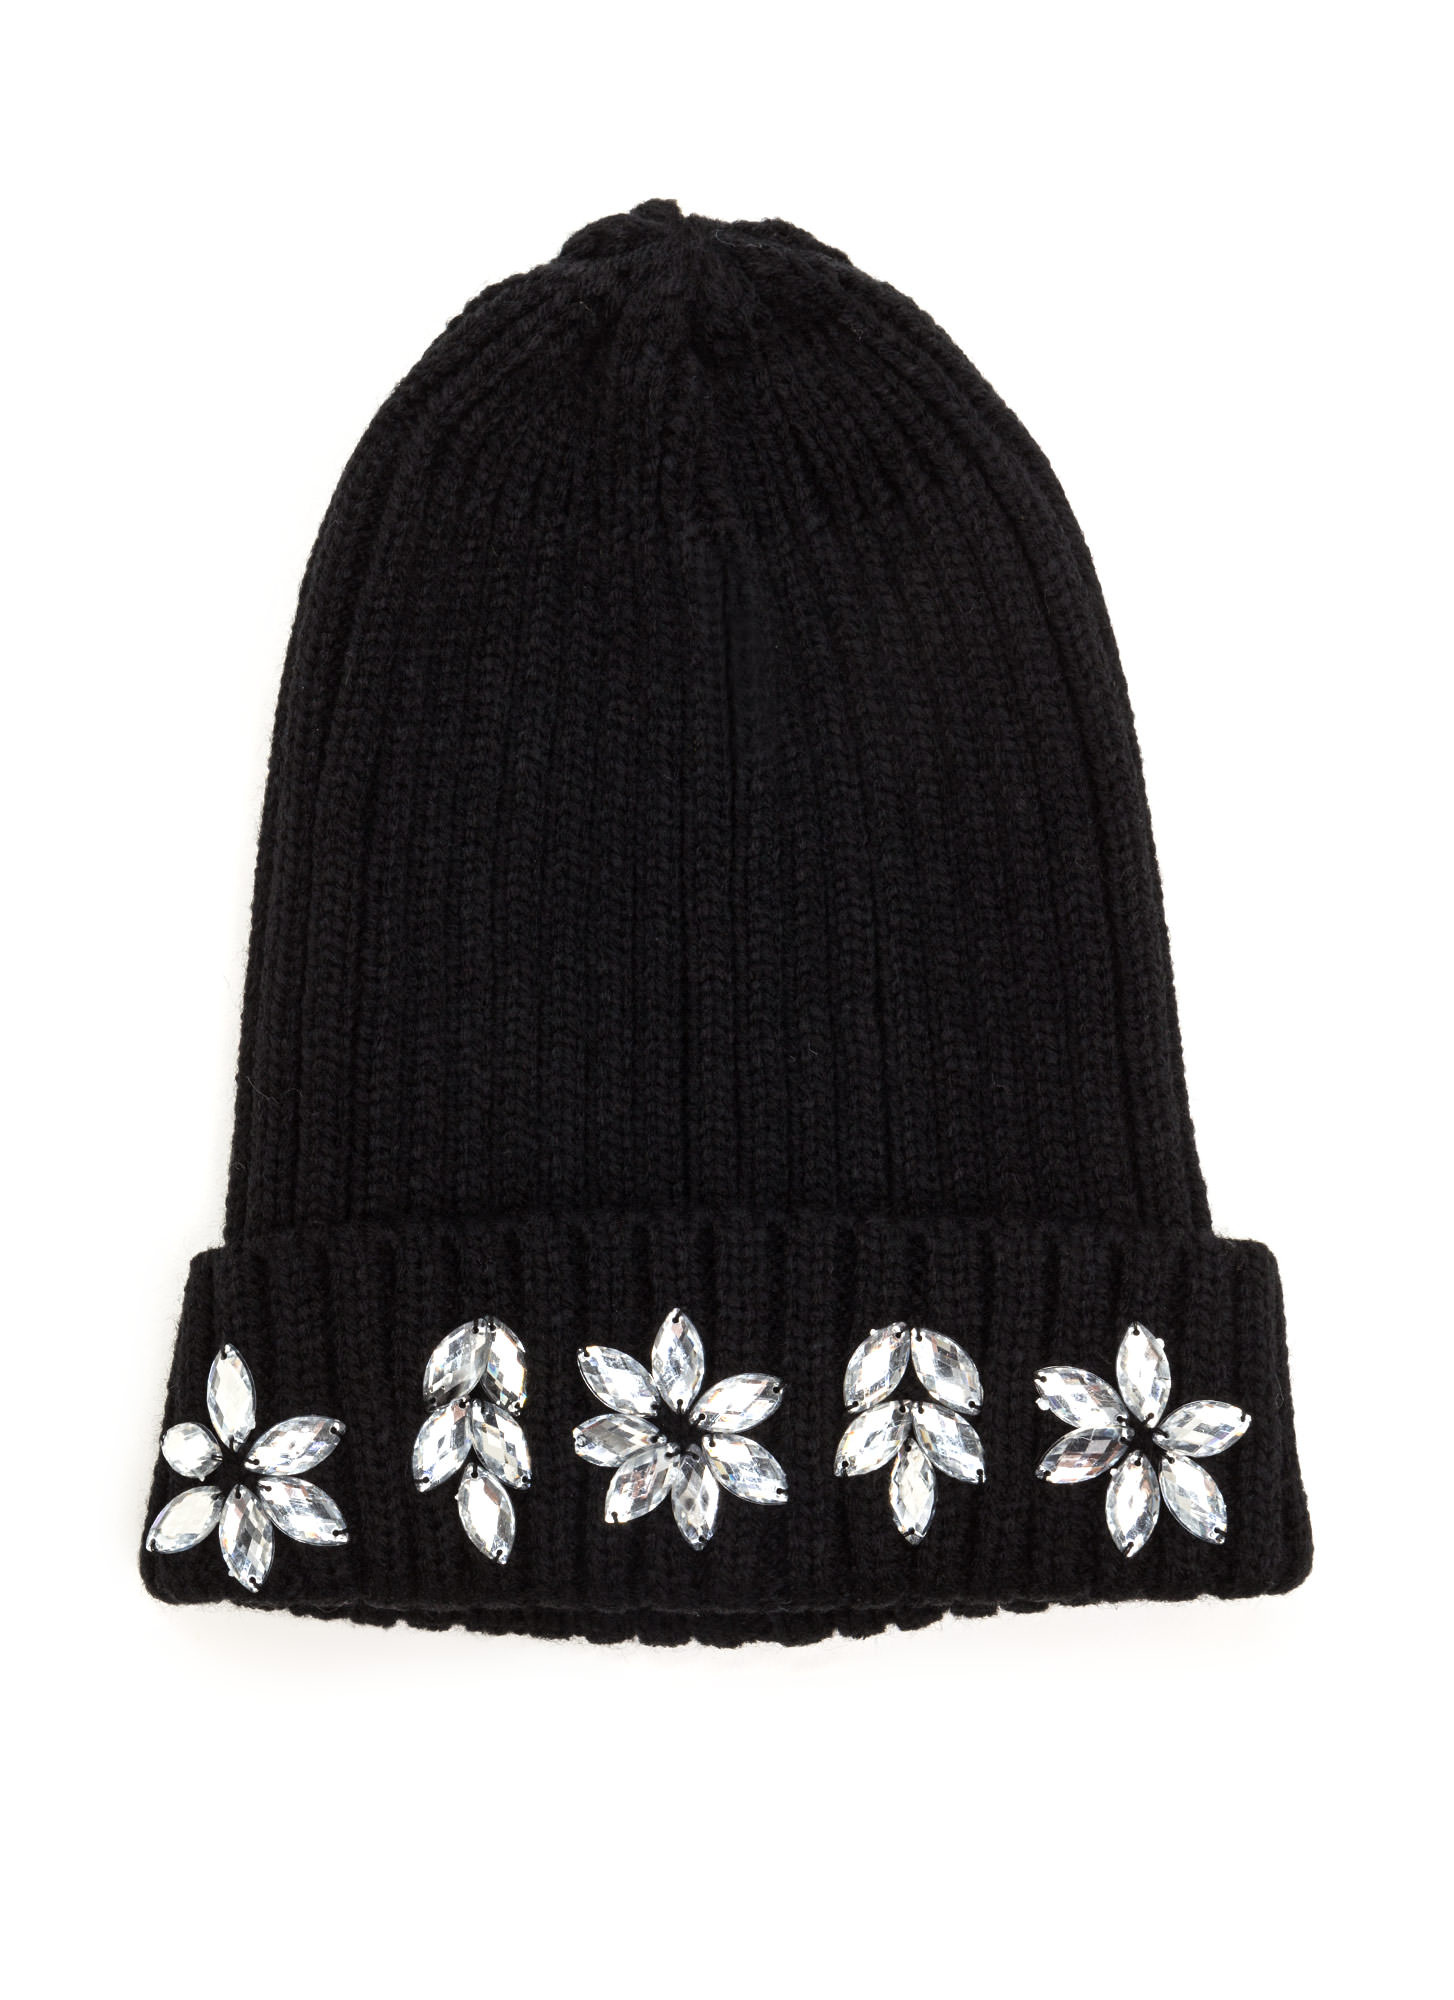 Just Fleur You Jeweled Beanie BLACK